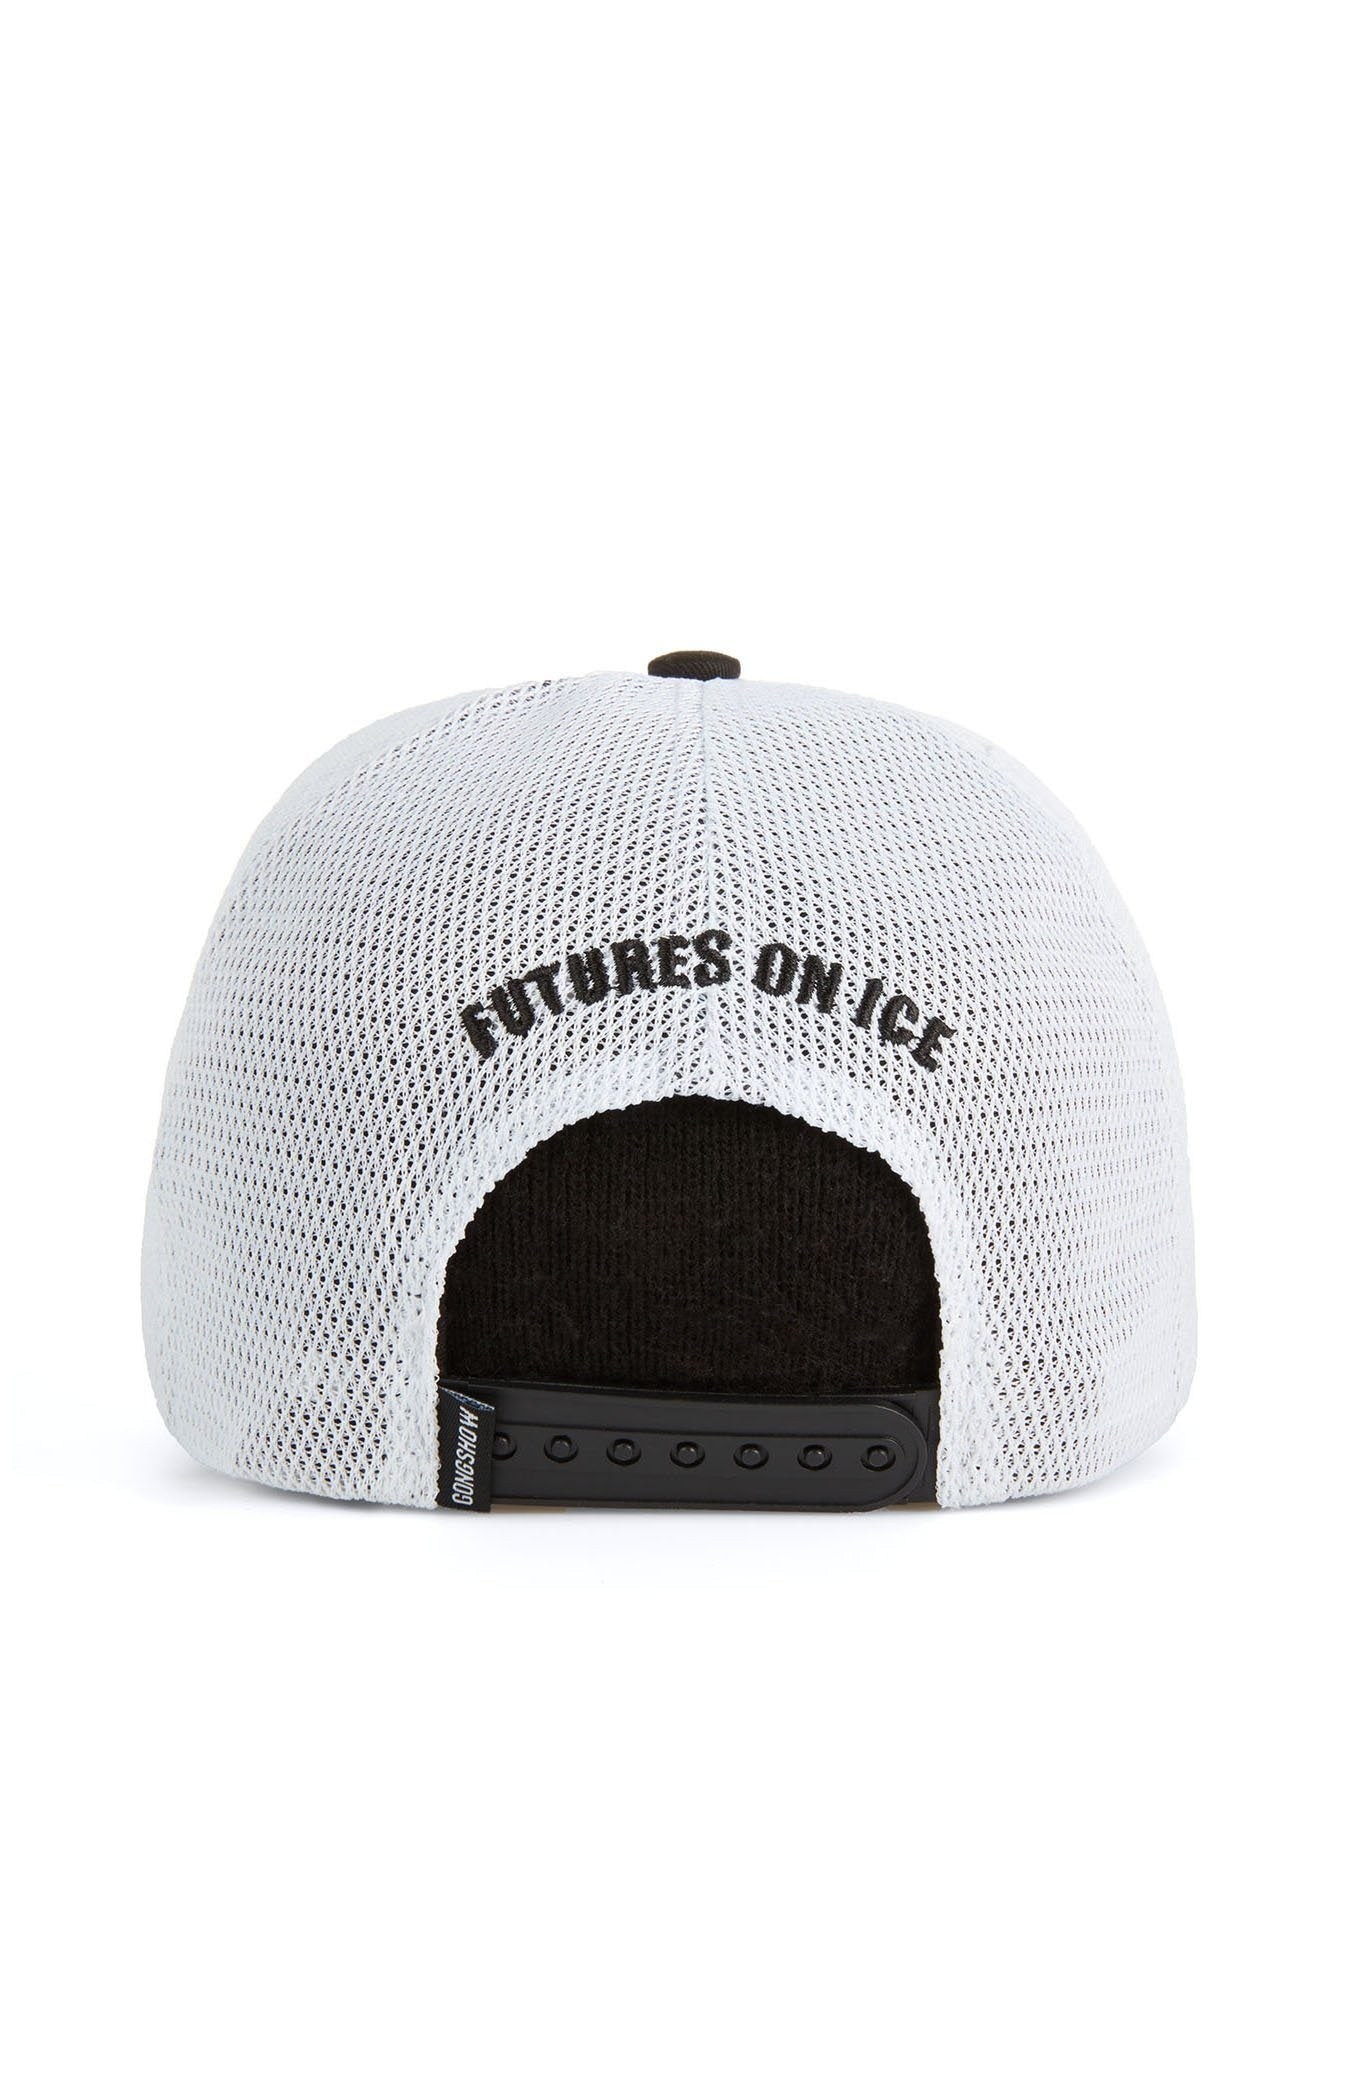 9c41e578 Gongshow Official CCHL Black Hockey Hat – GONGSHOW USA